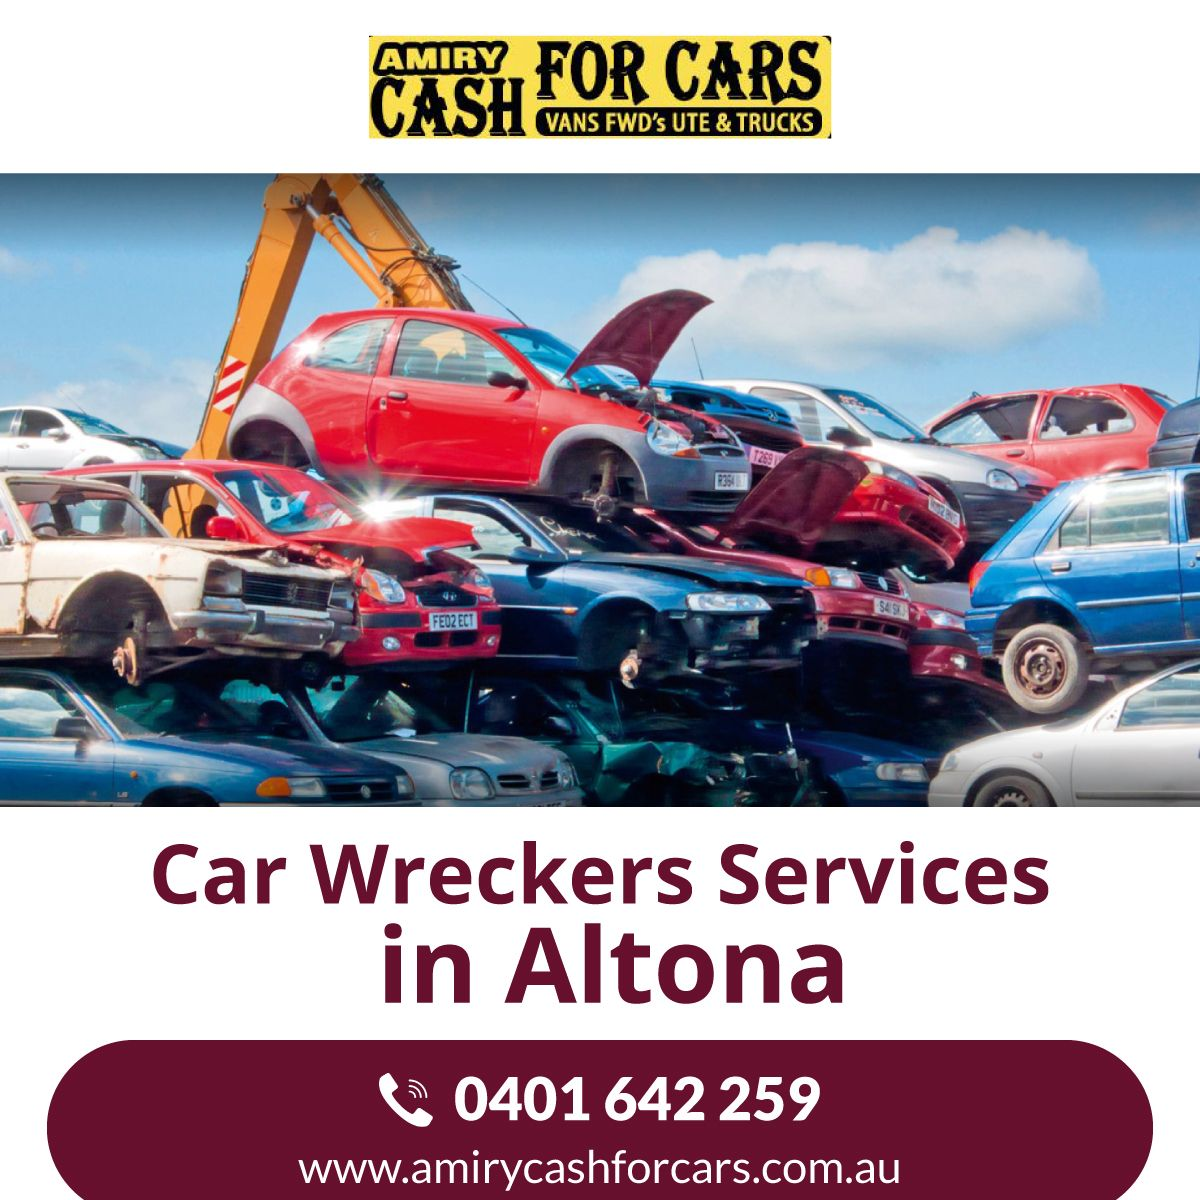 Amiry Enterprises Is A Professional Car Removal Company That